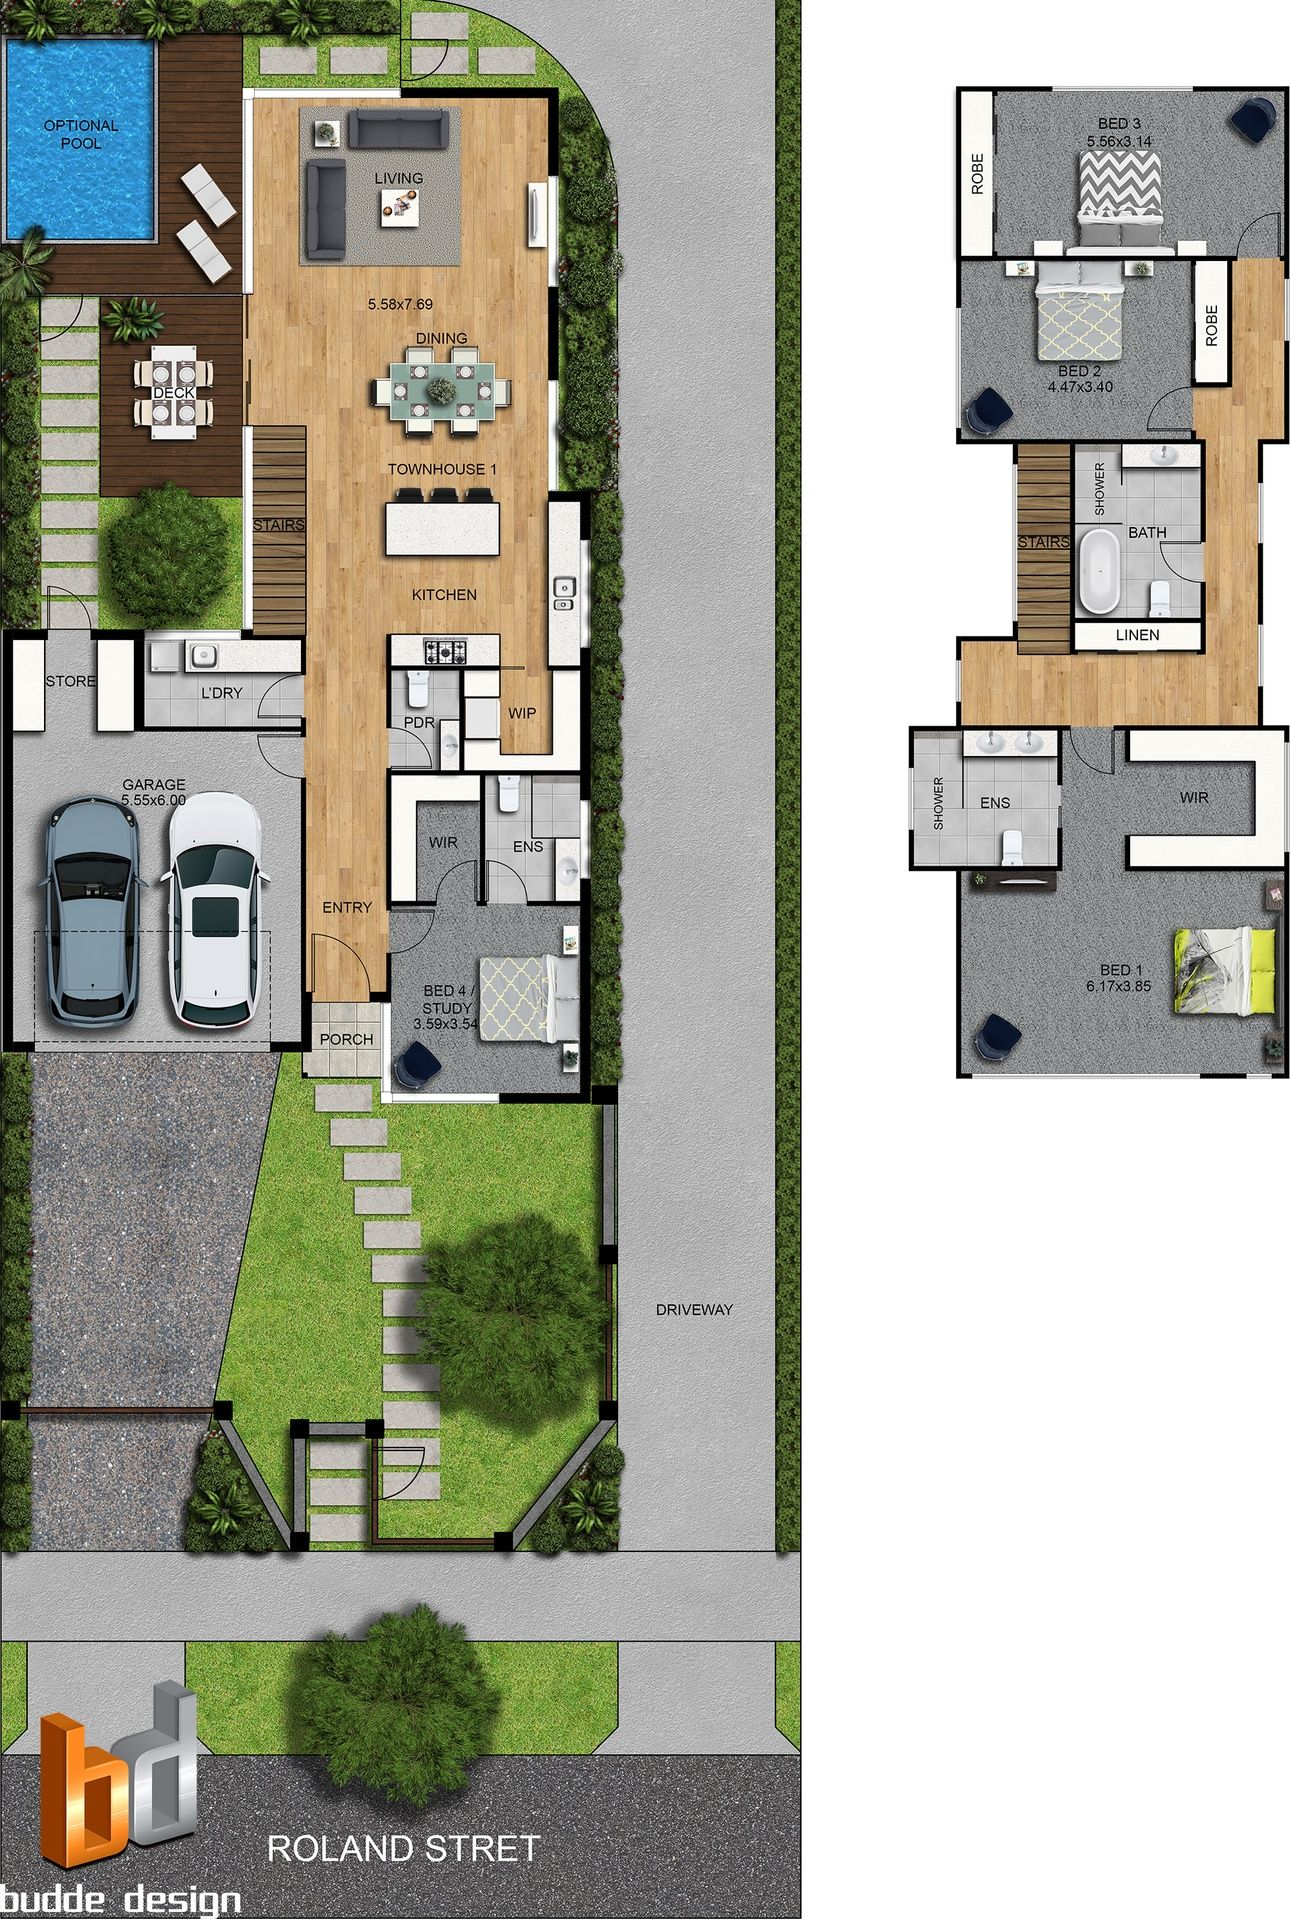 storey floor plans australia   leading  architectural visualisation and rendering company specialising in also best images home plants house rh pinterest